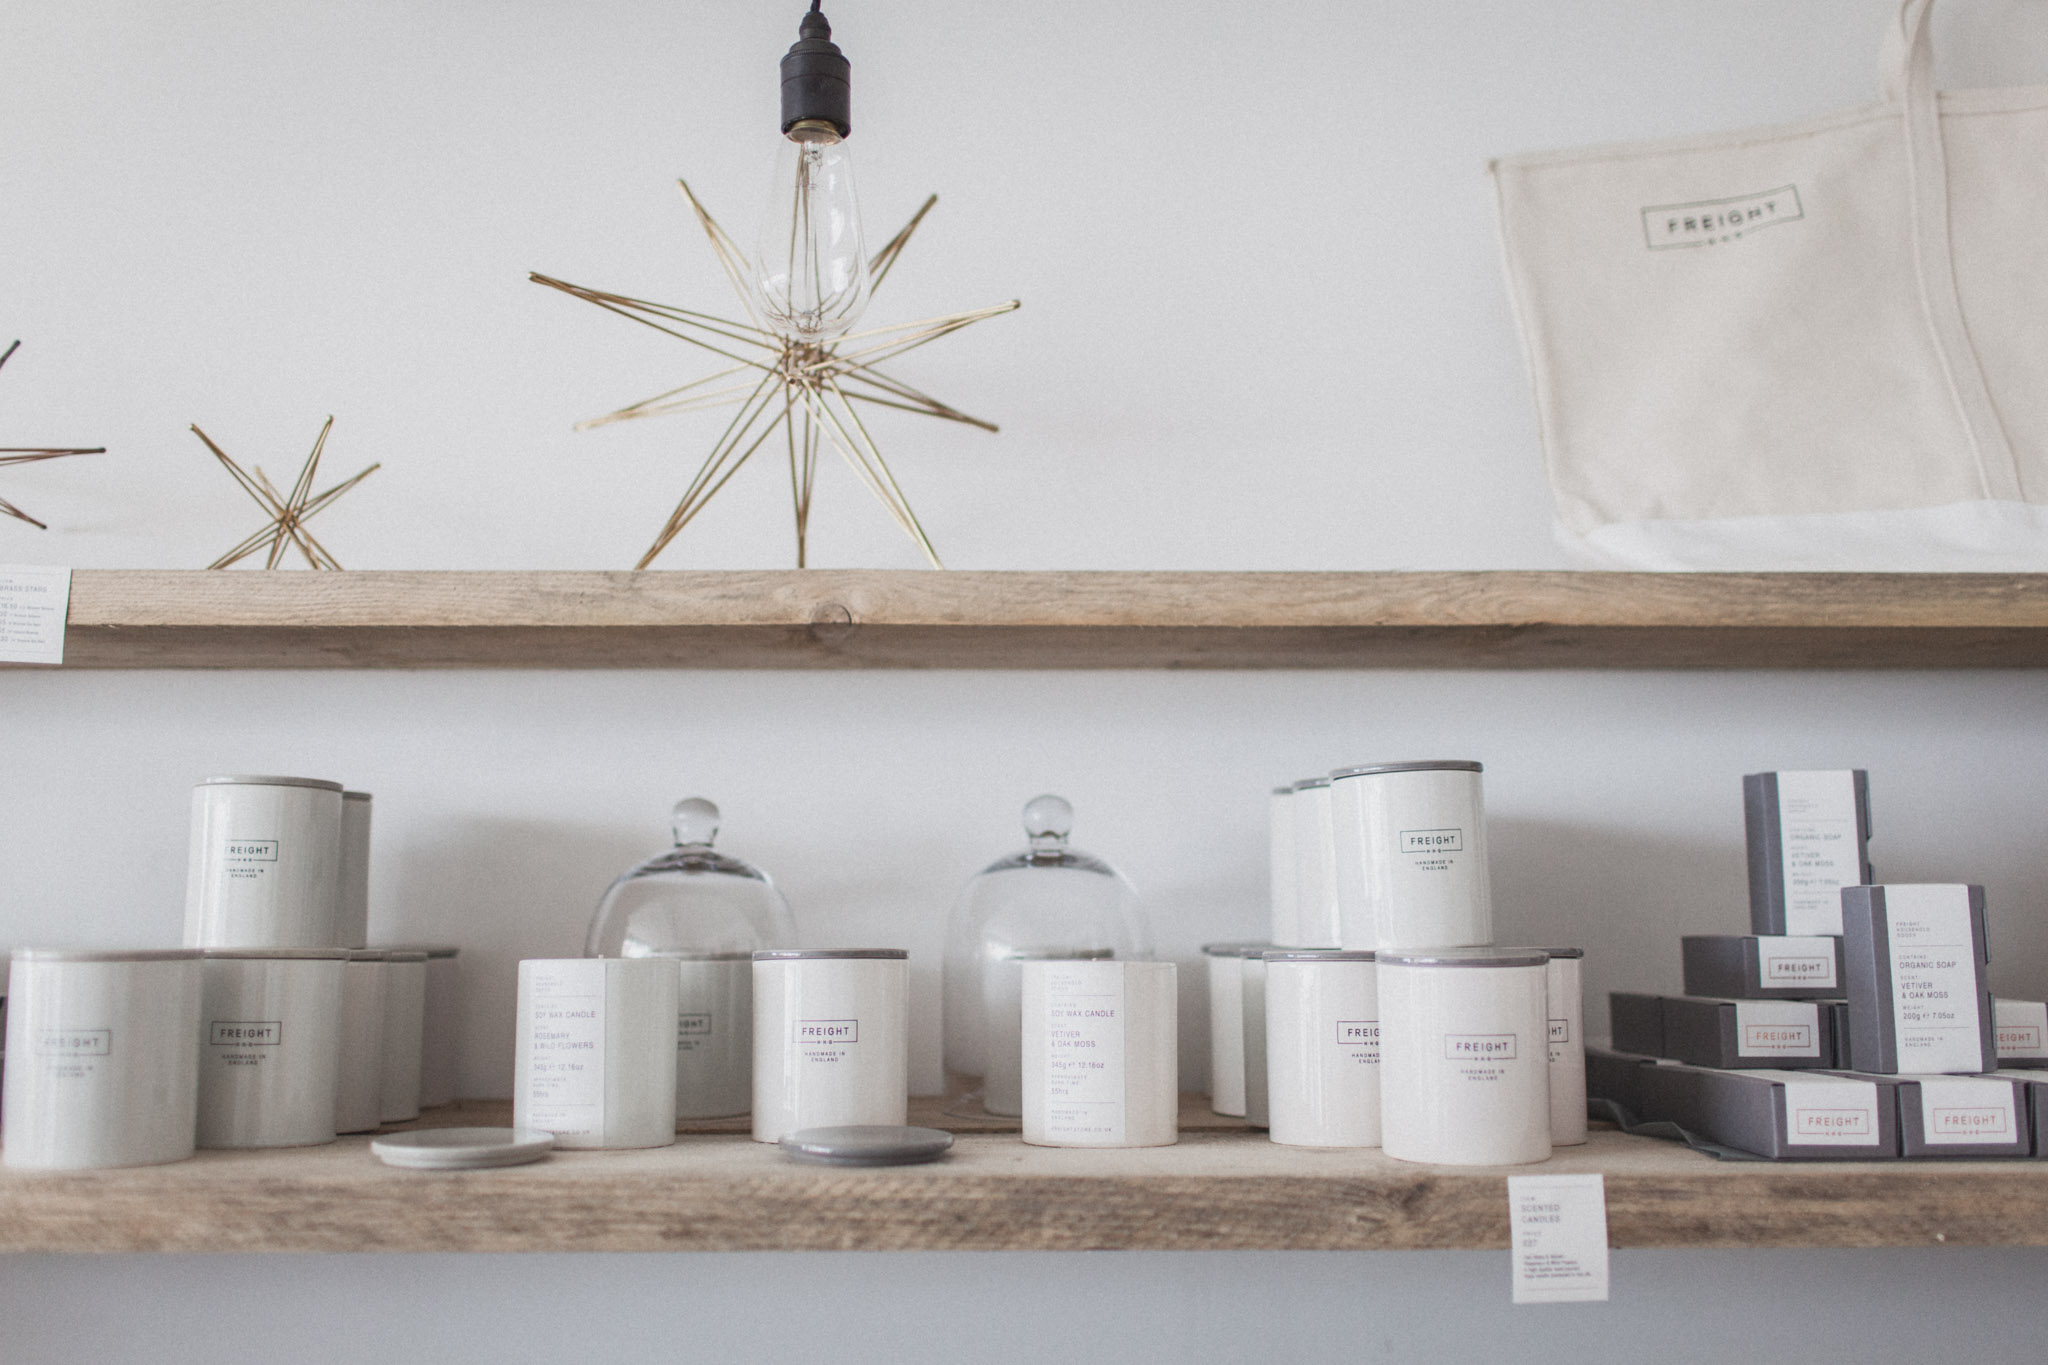 Freight HHG on the High Street in Lewes selling homewares. Retreat // Food and lifestyle blog based in Sussex. Photography by Emma Gutteridge.